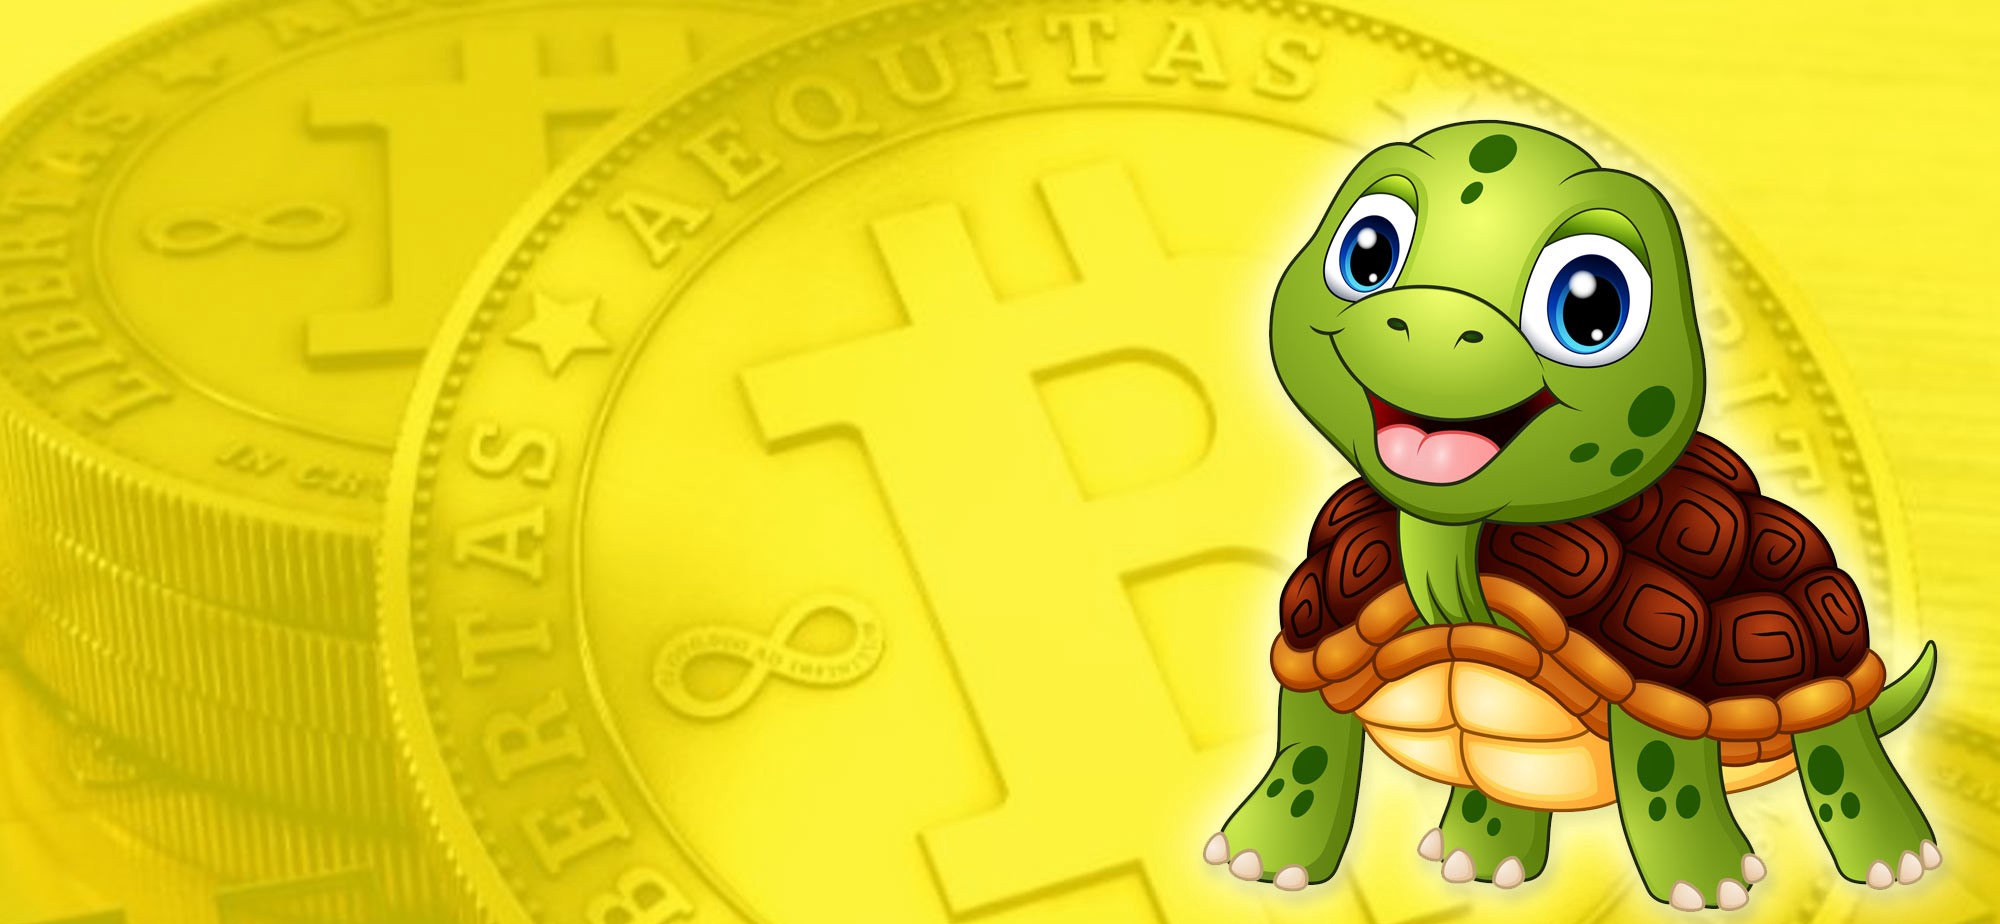 My Super Secret Crypto Turtle Strategy Revealed - By